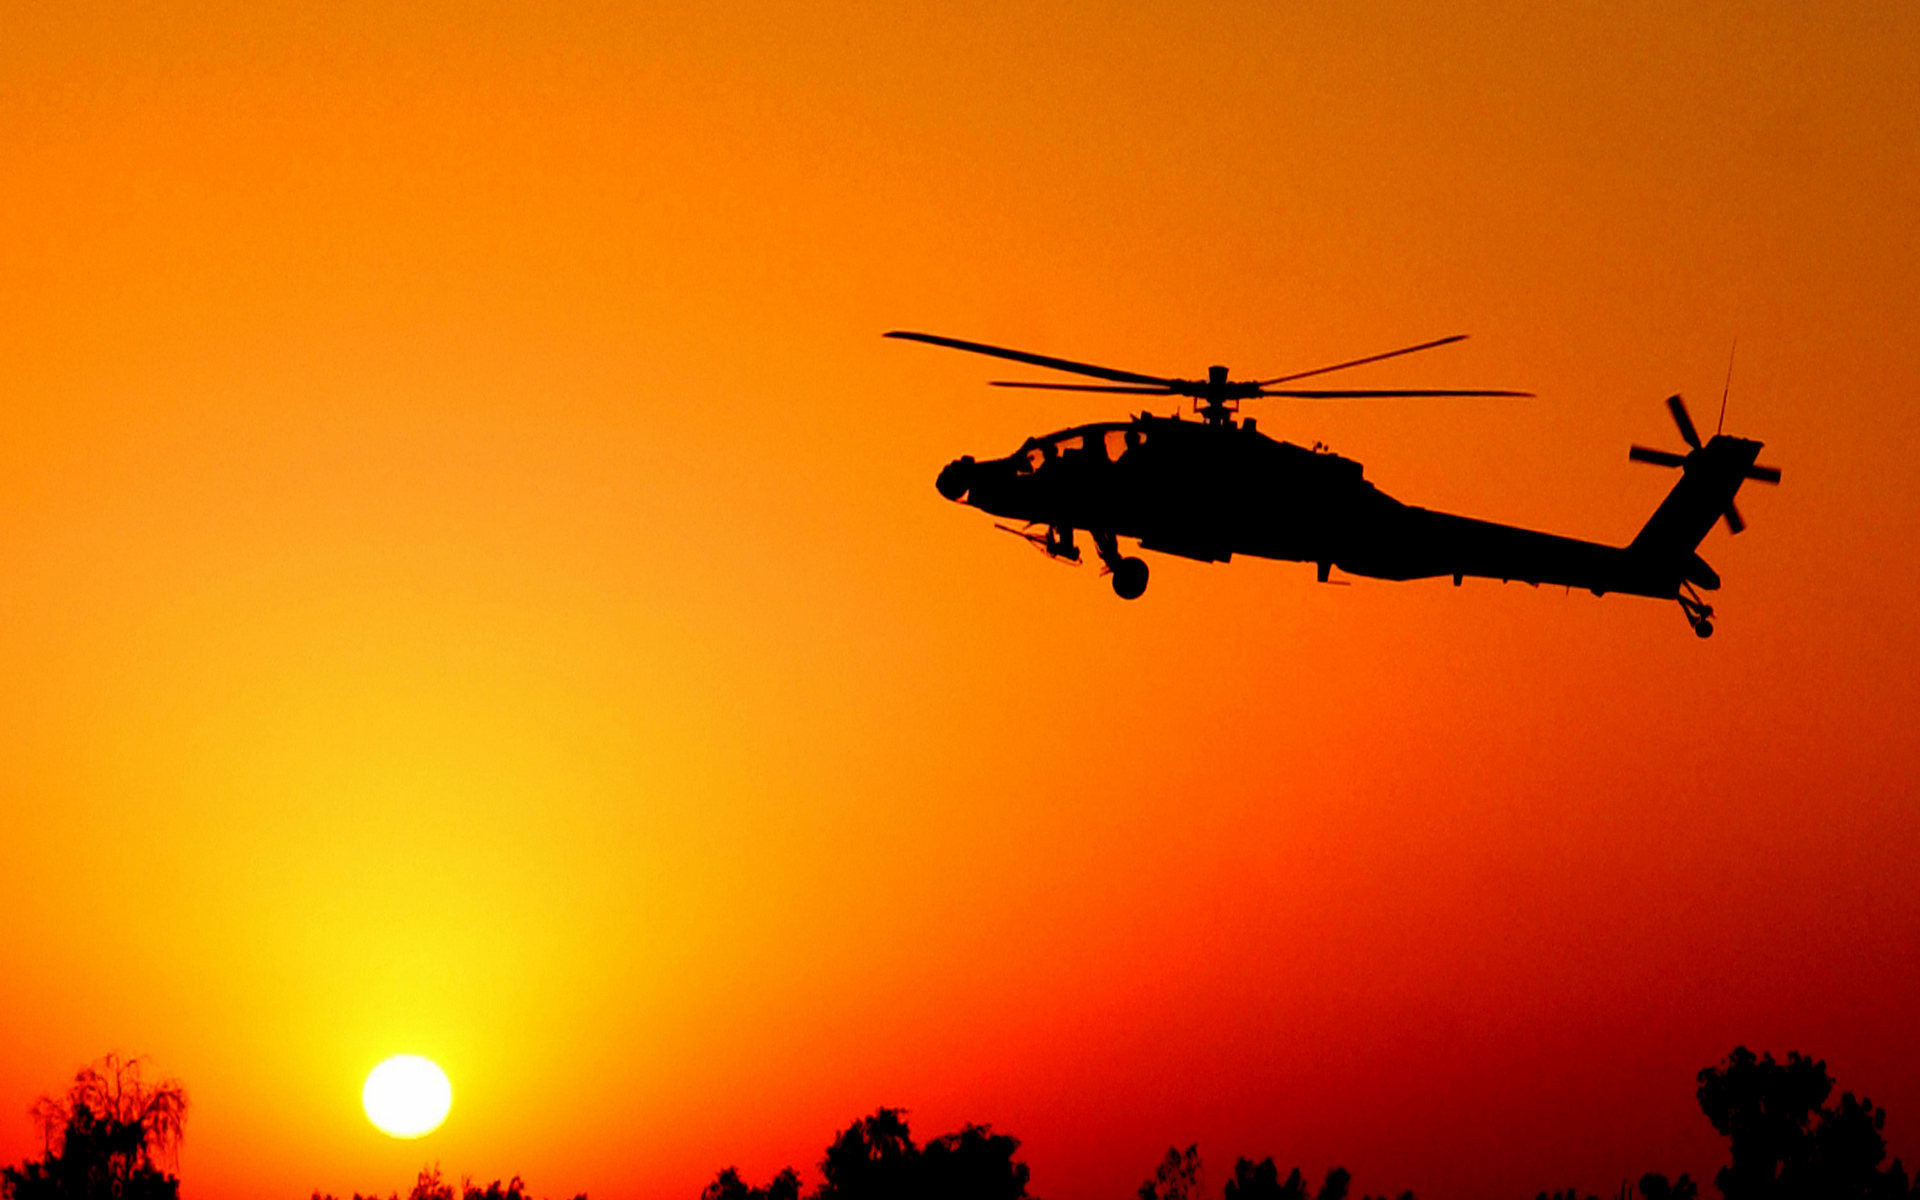 AH 64 Apache desktop wallpaper Aircrafts and Planes GoodWPcom 1920x1200